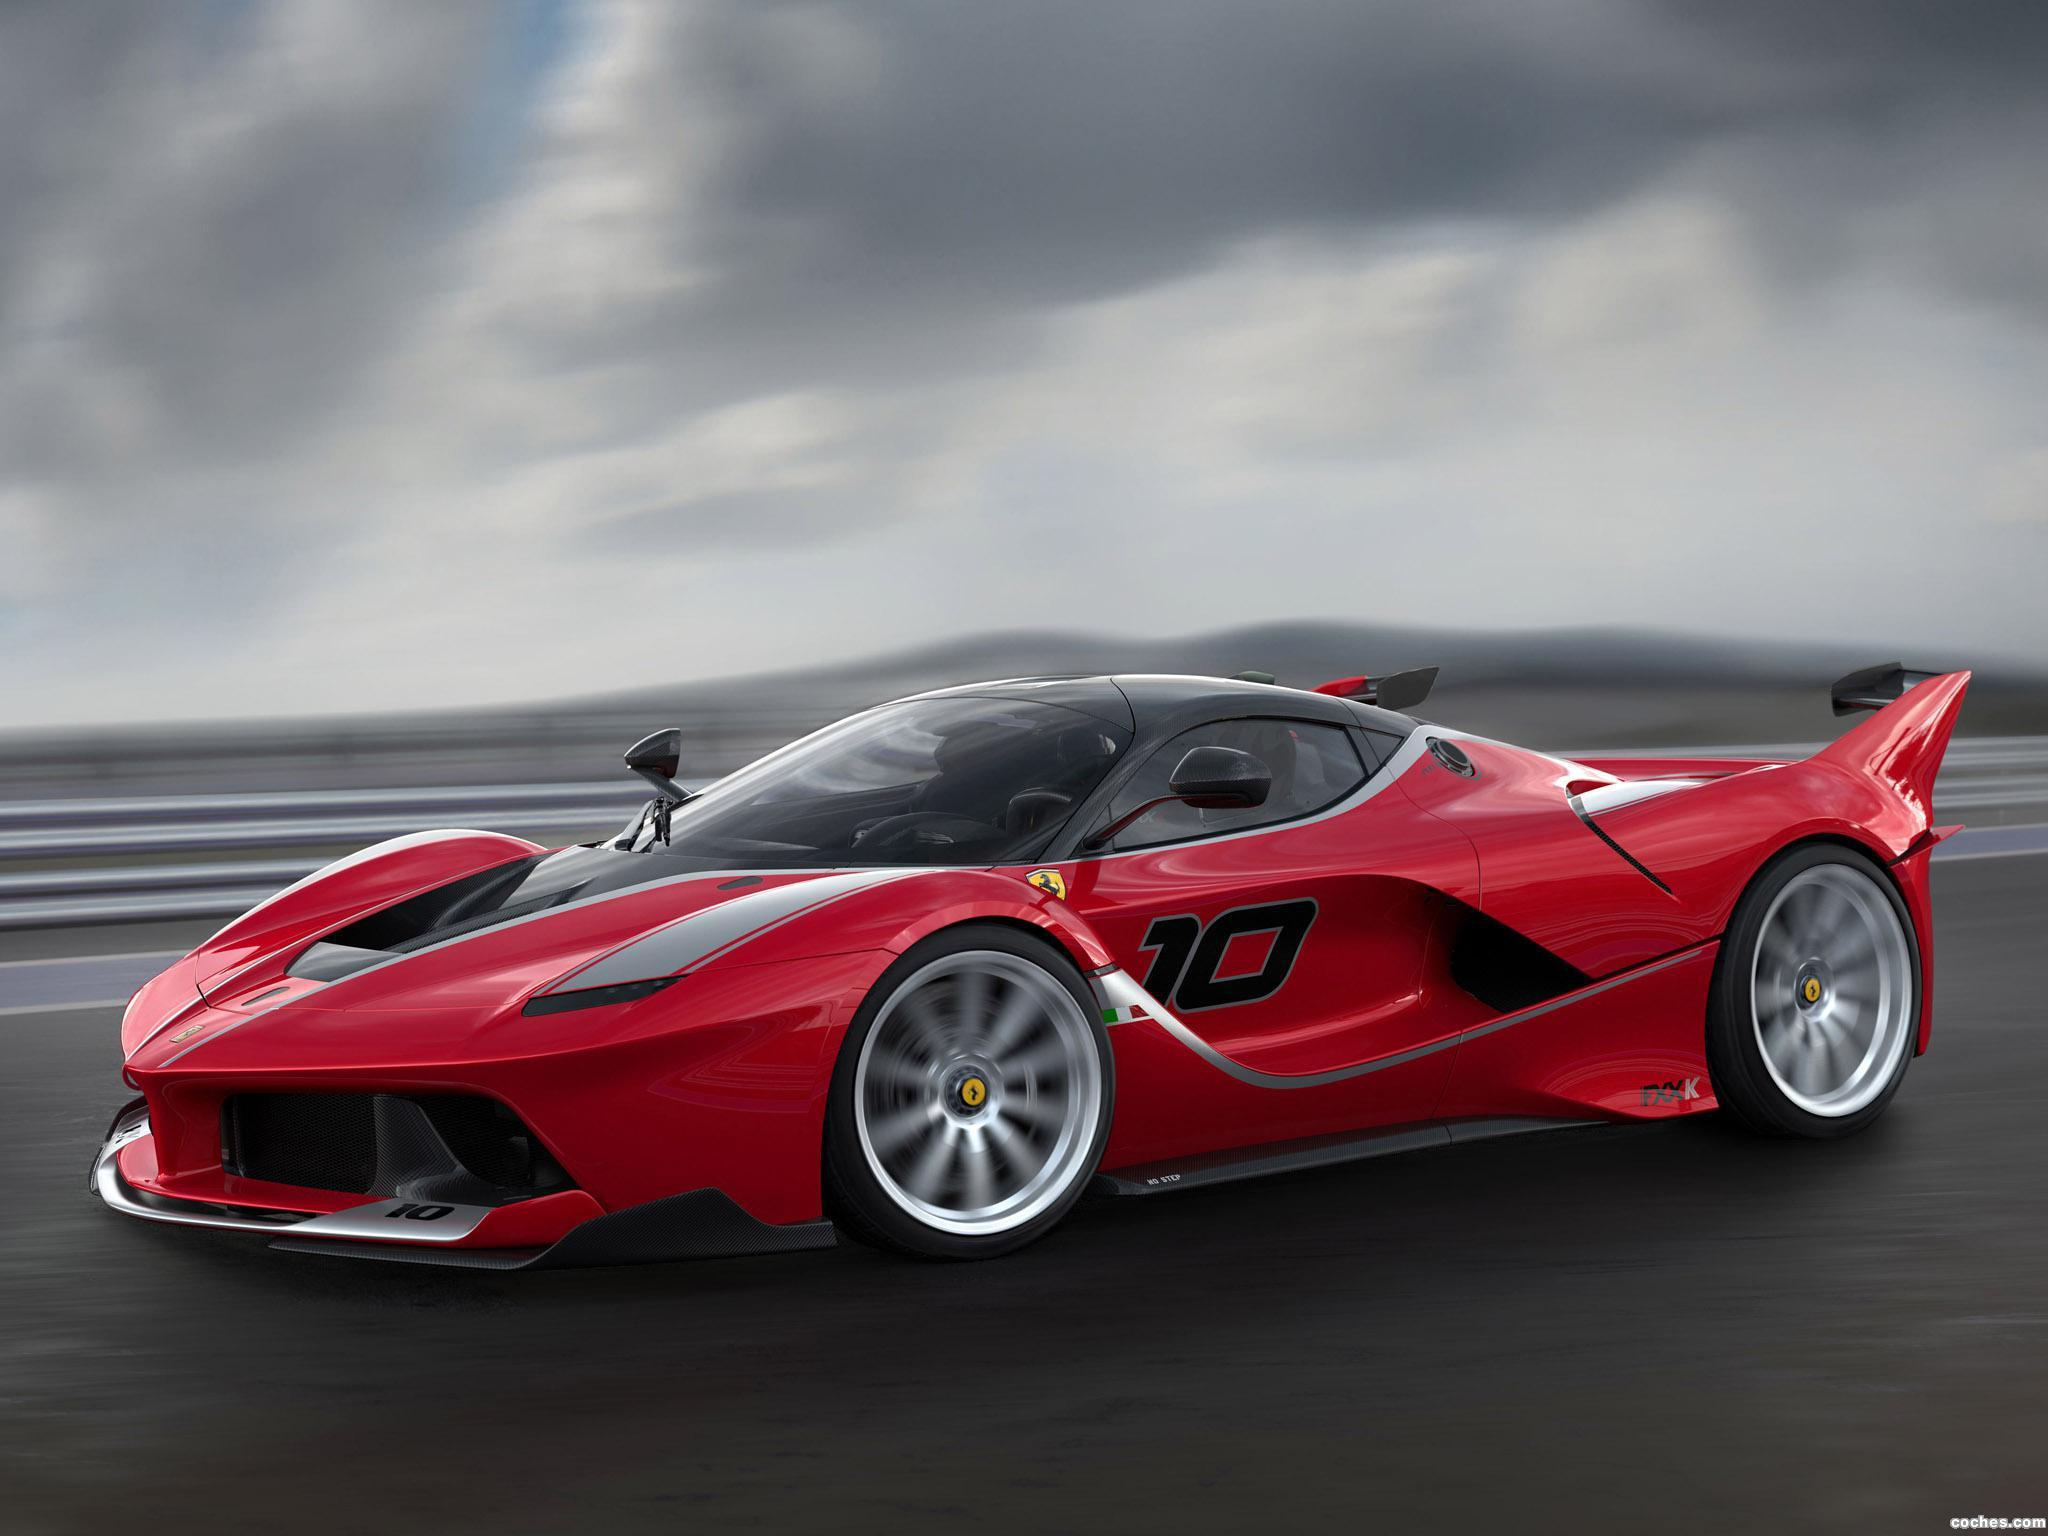 Fotos De Ferrari Fxx K 2015 Foto Ferrari Enzo Fxx K 2099337 Hd Wallpaper Backgrounds Download